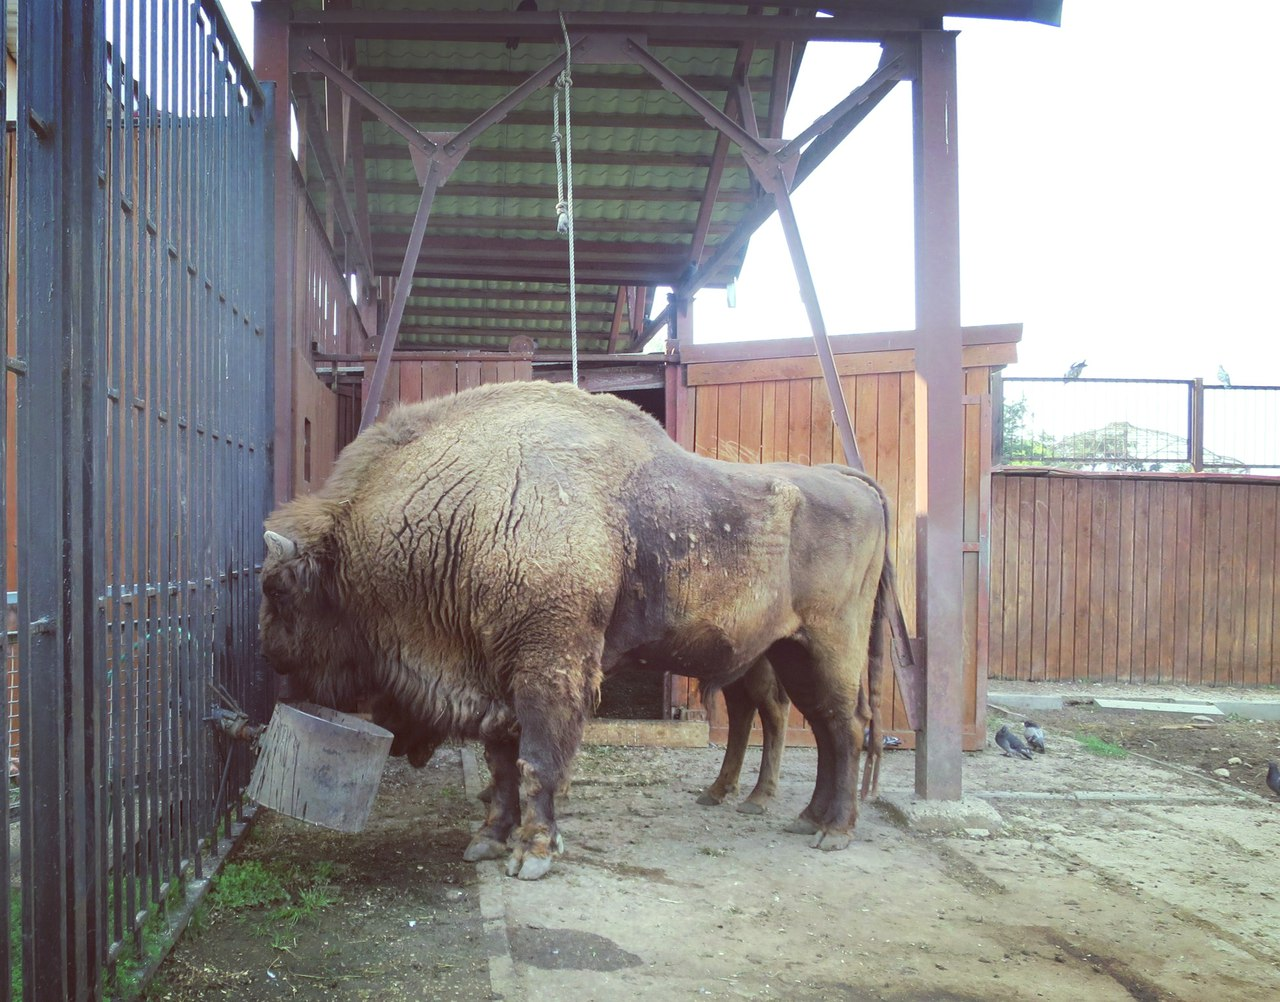 A male bison at the Minsk Zoo. Autumn 2016 Photo by A.Basak